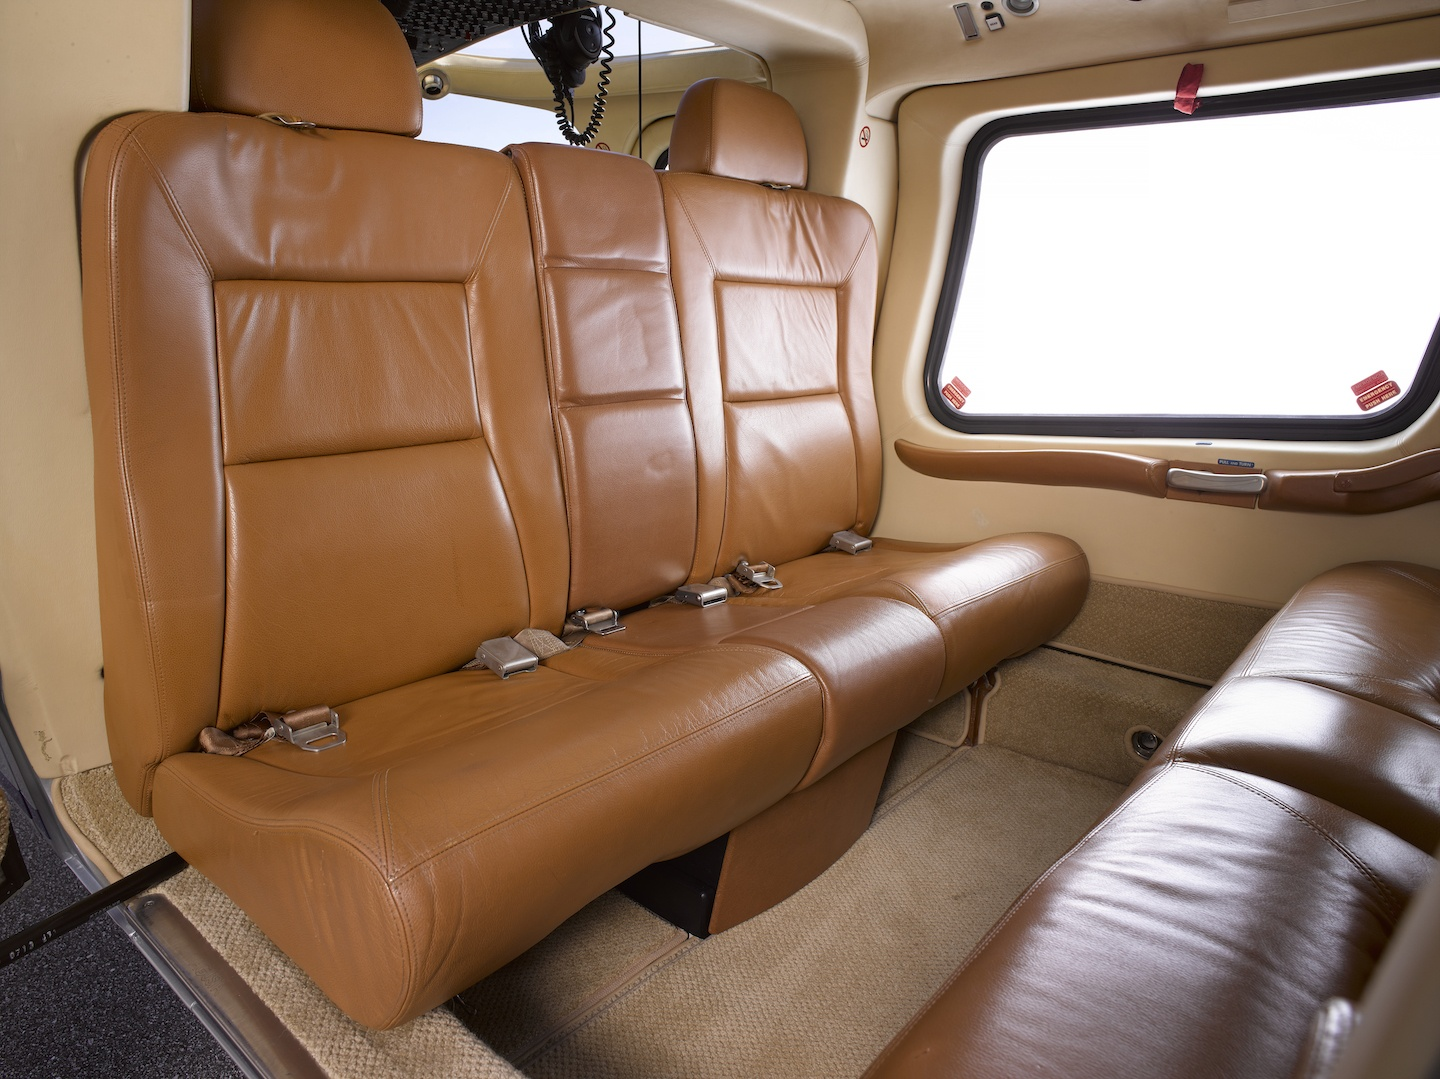 Backseats of the 1999 Agusta A109E SN 11057 helicopter on Freestream